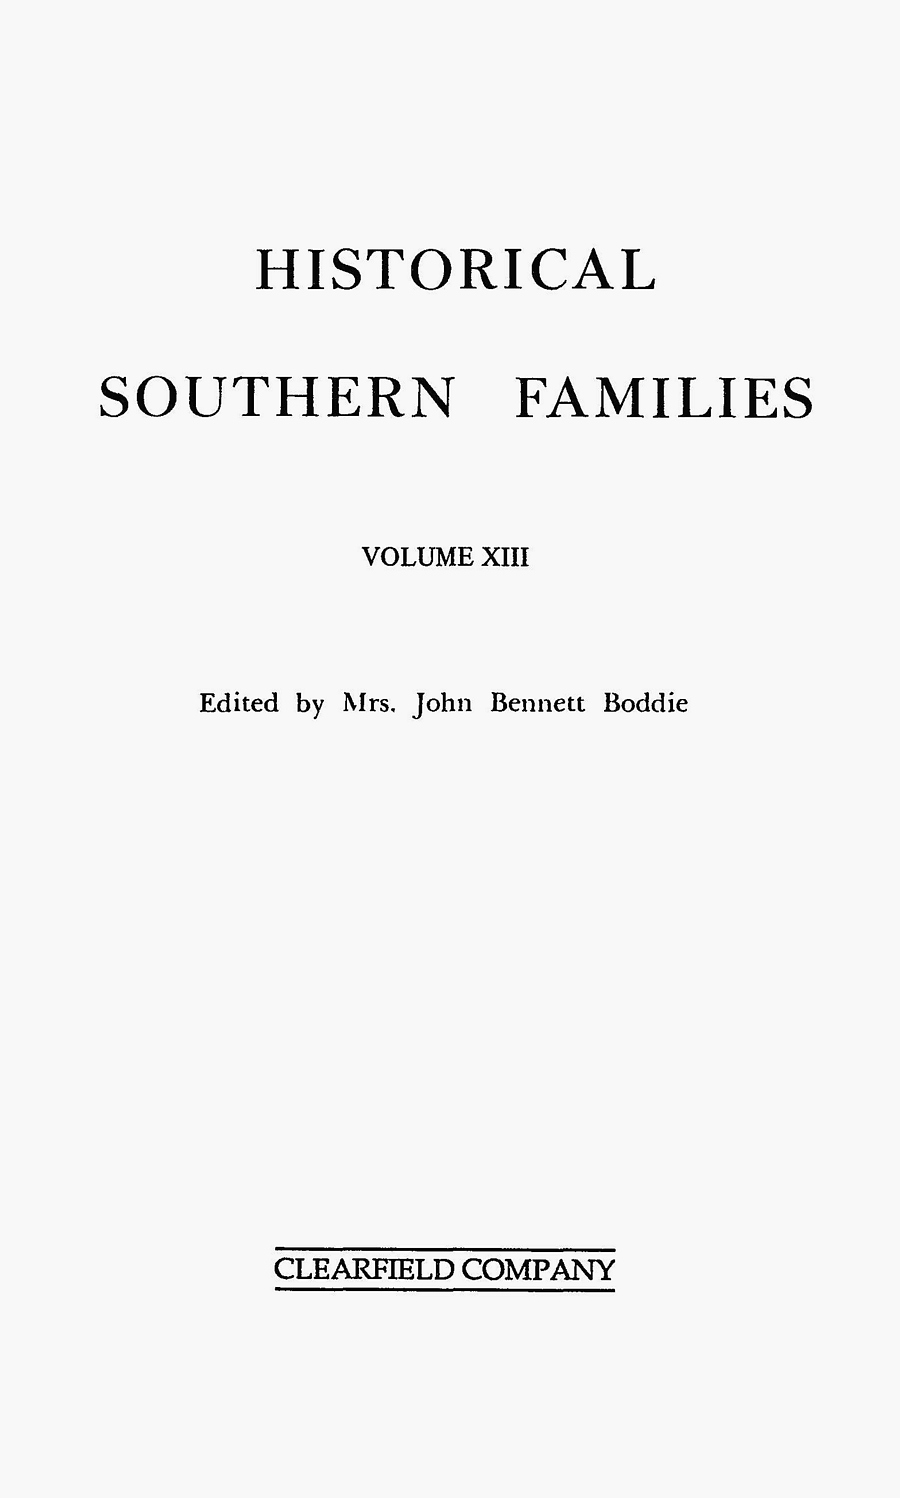 HistoricalSouthernFamilies